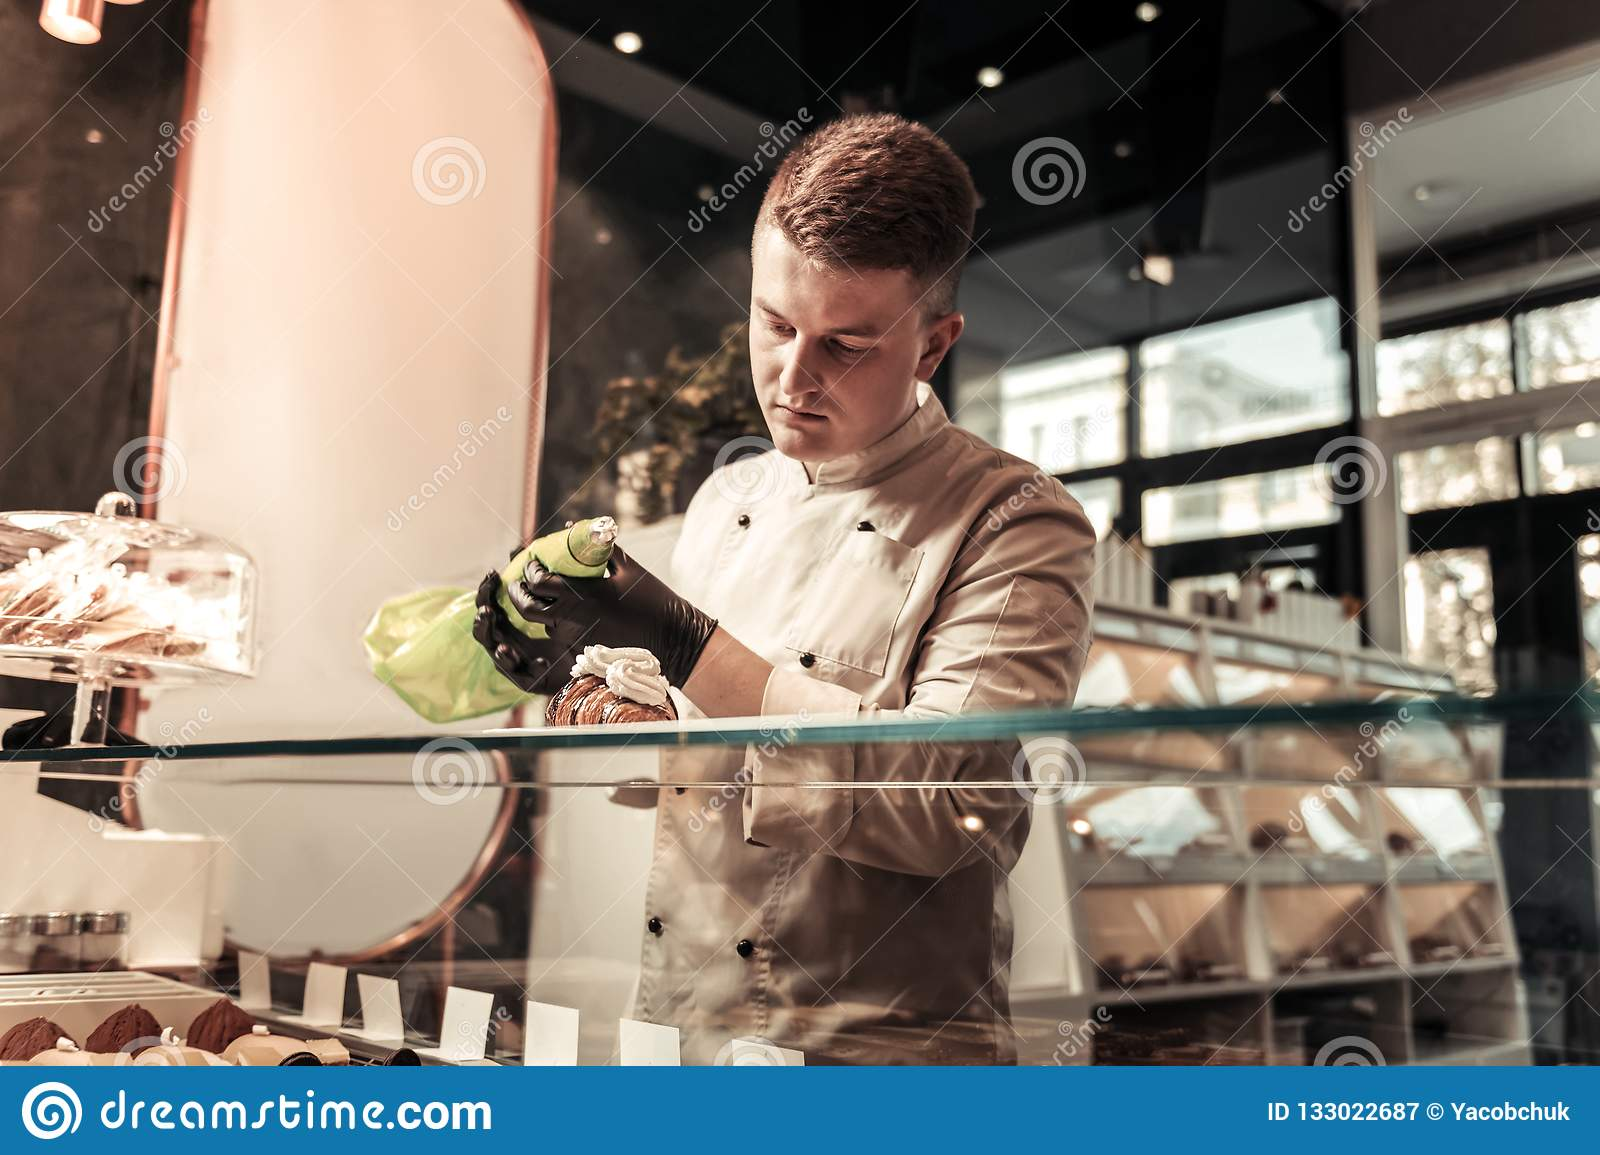 Serious smart confectioner holding a pastry bag